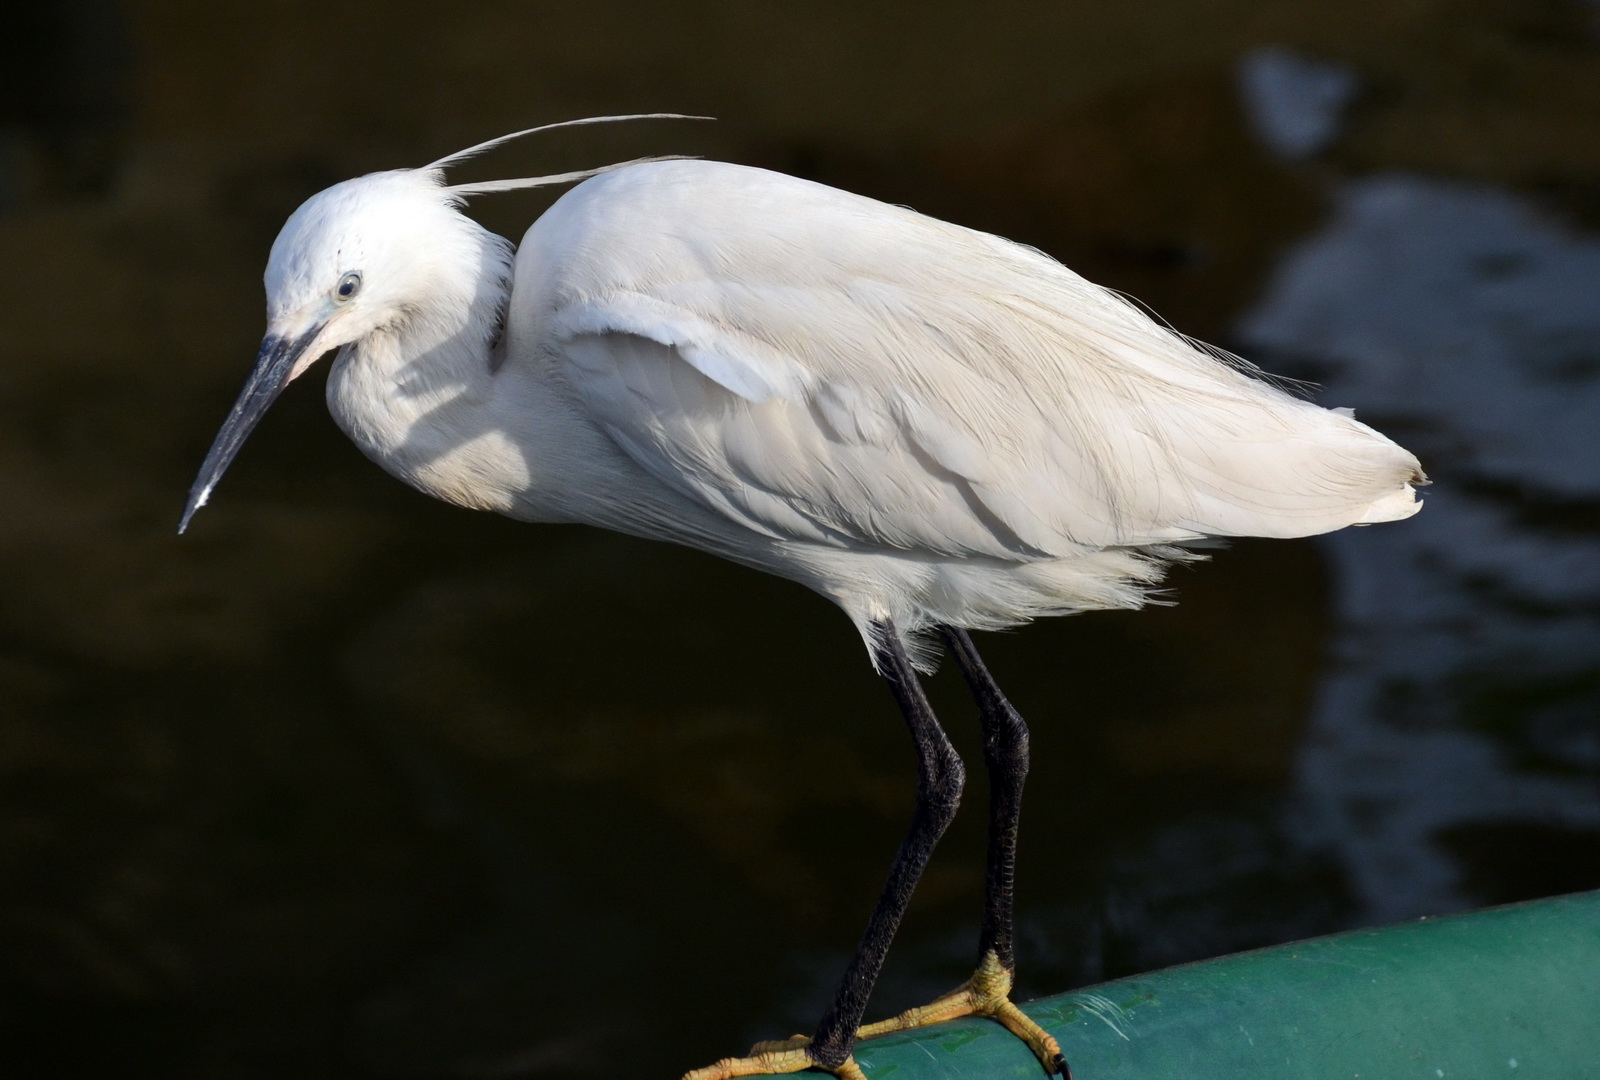 Sri Lanka, Little Egret